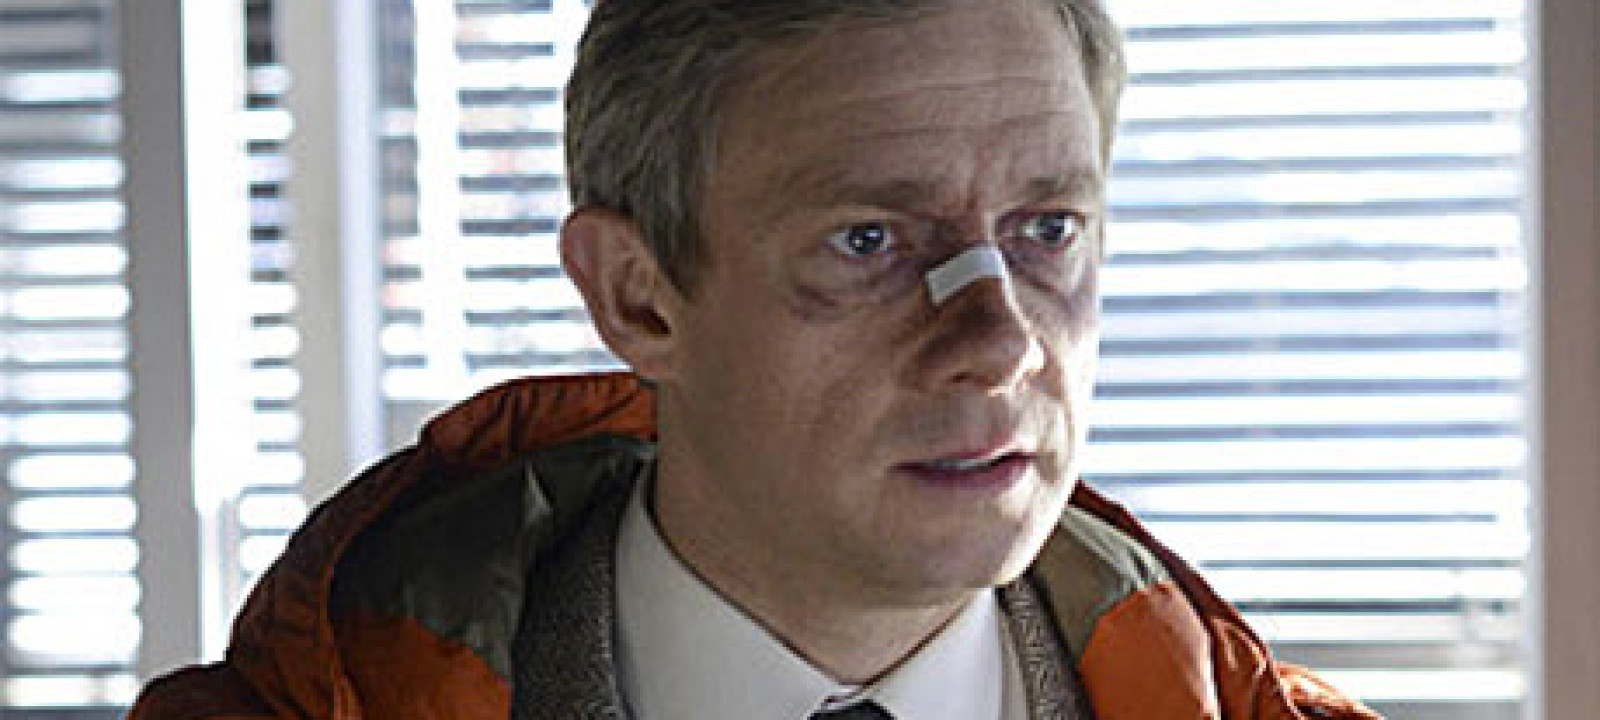 Martin Freeman in 'Fargo'